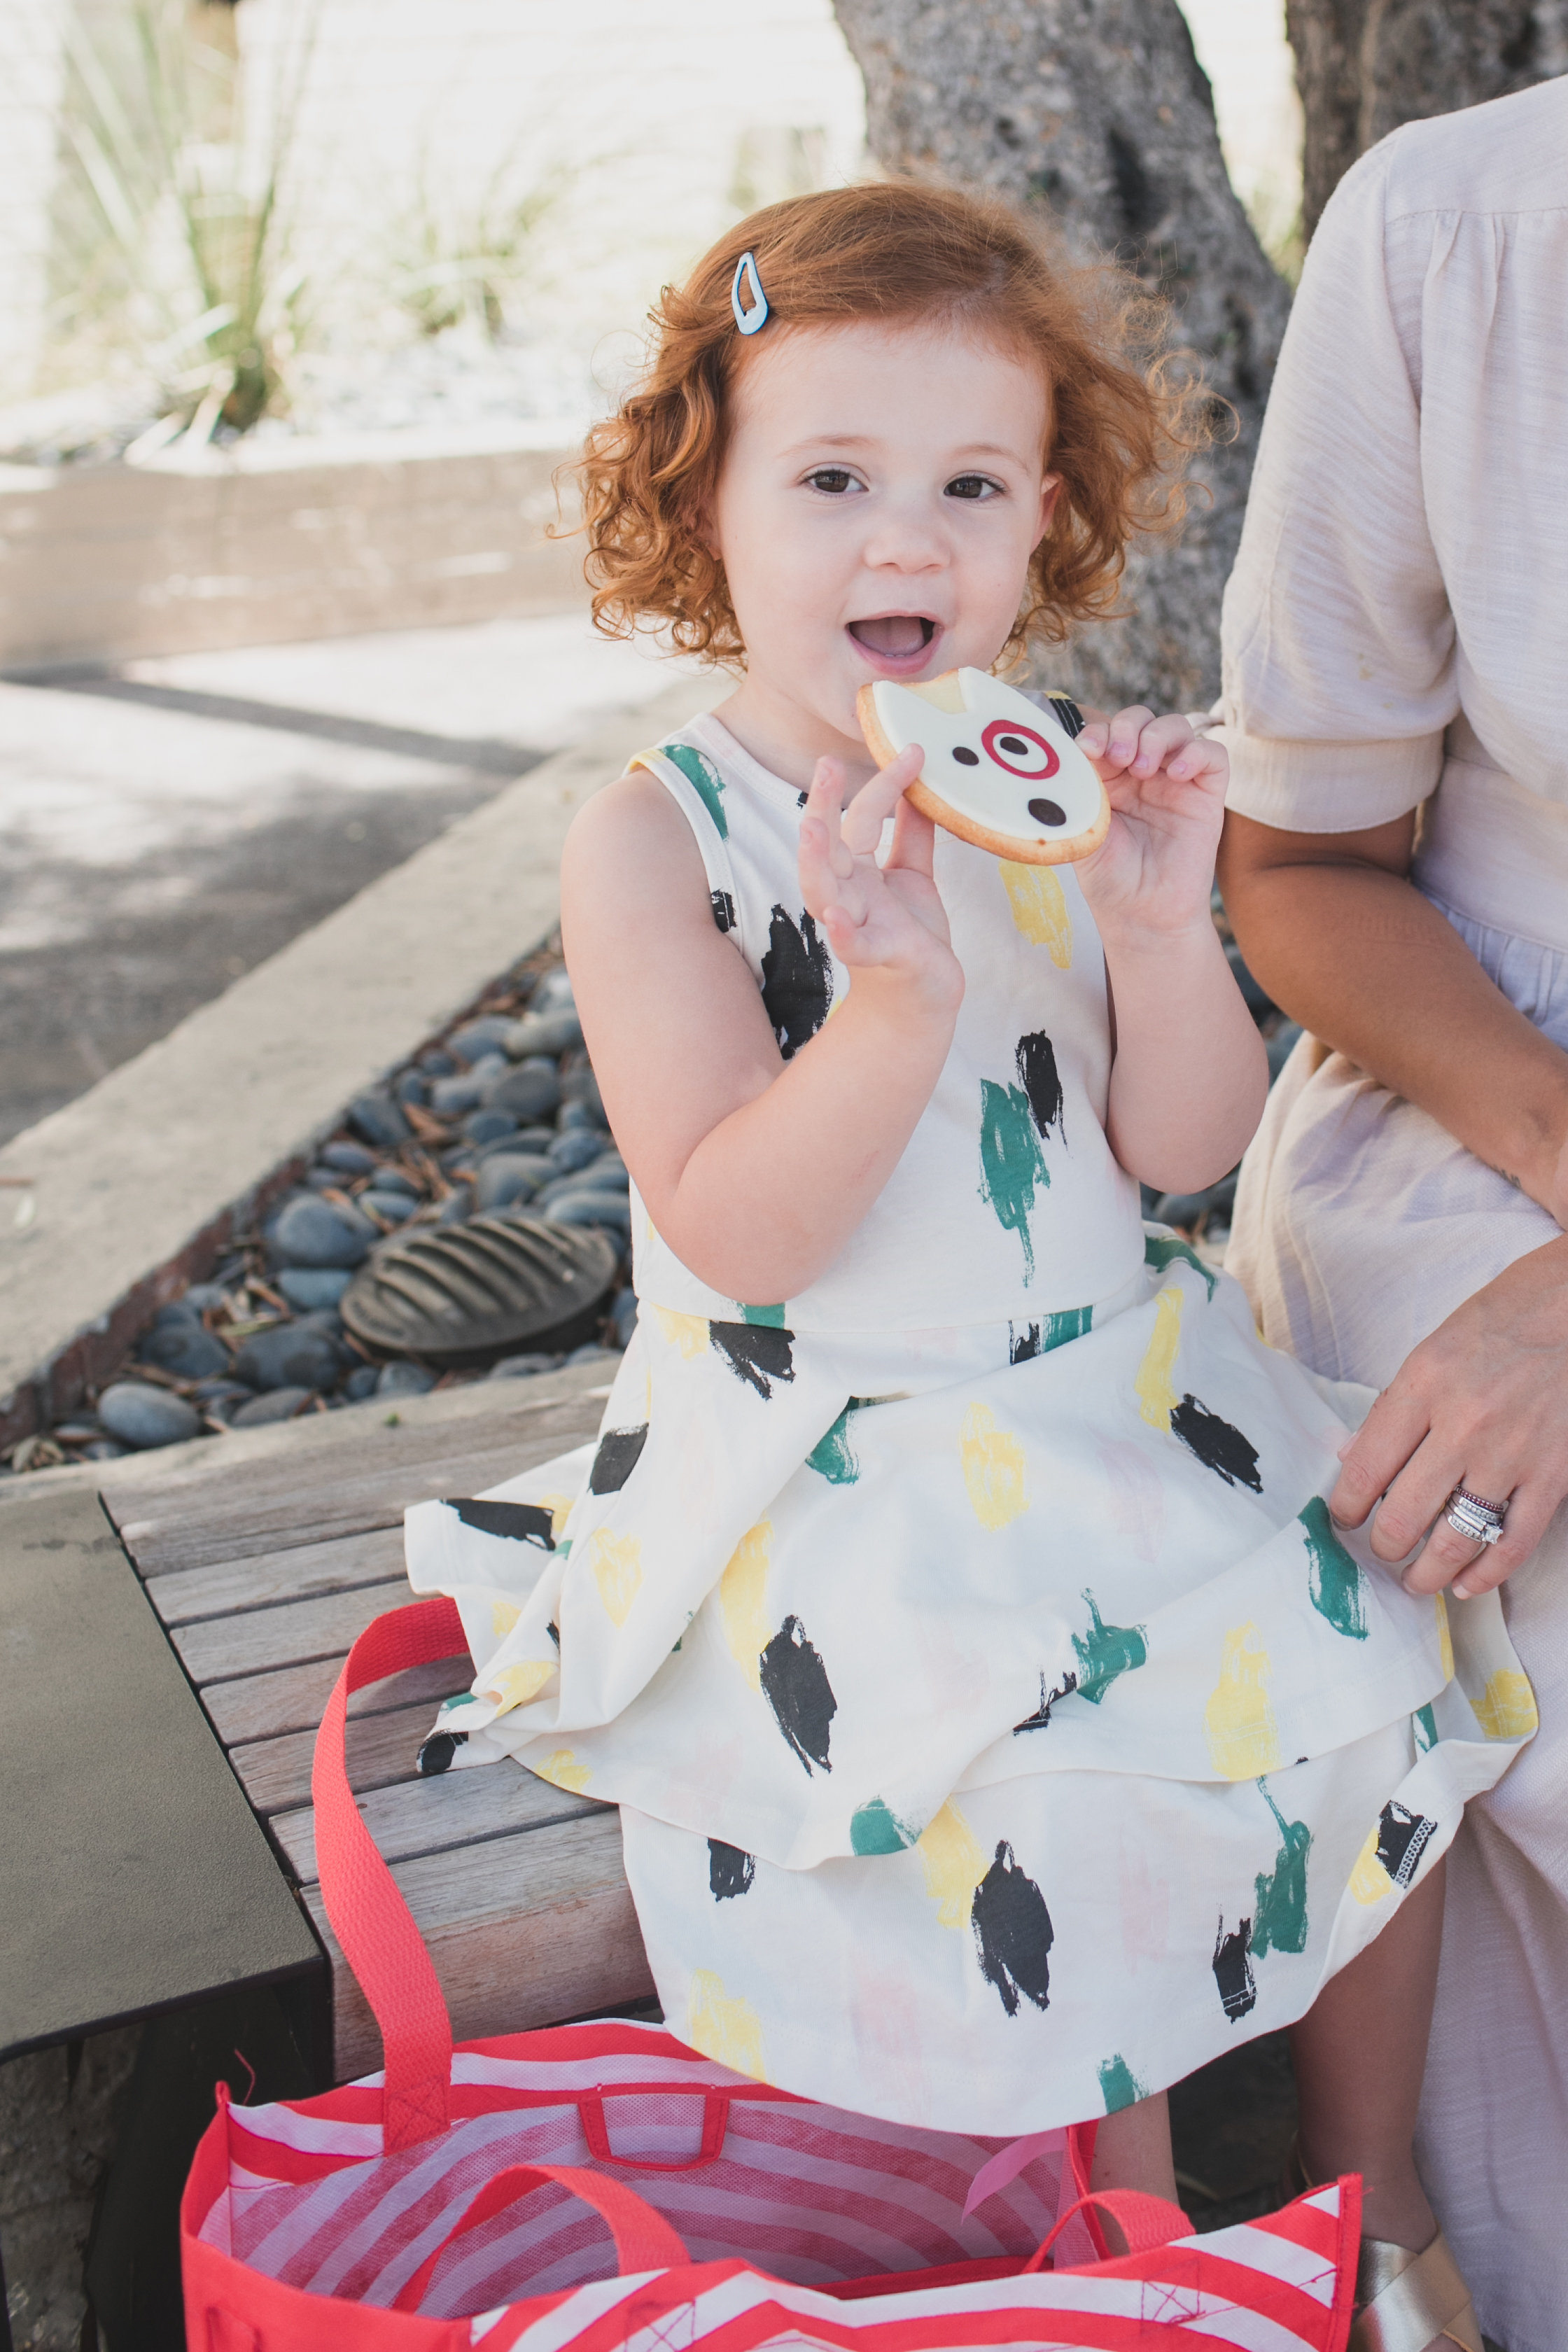 Baby_Boy_Bakery_Target_Lily_Ro_Photography-2537.jpg